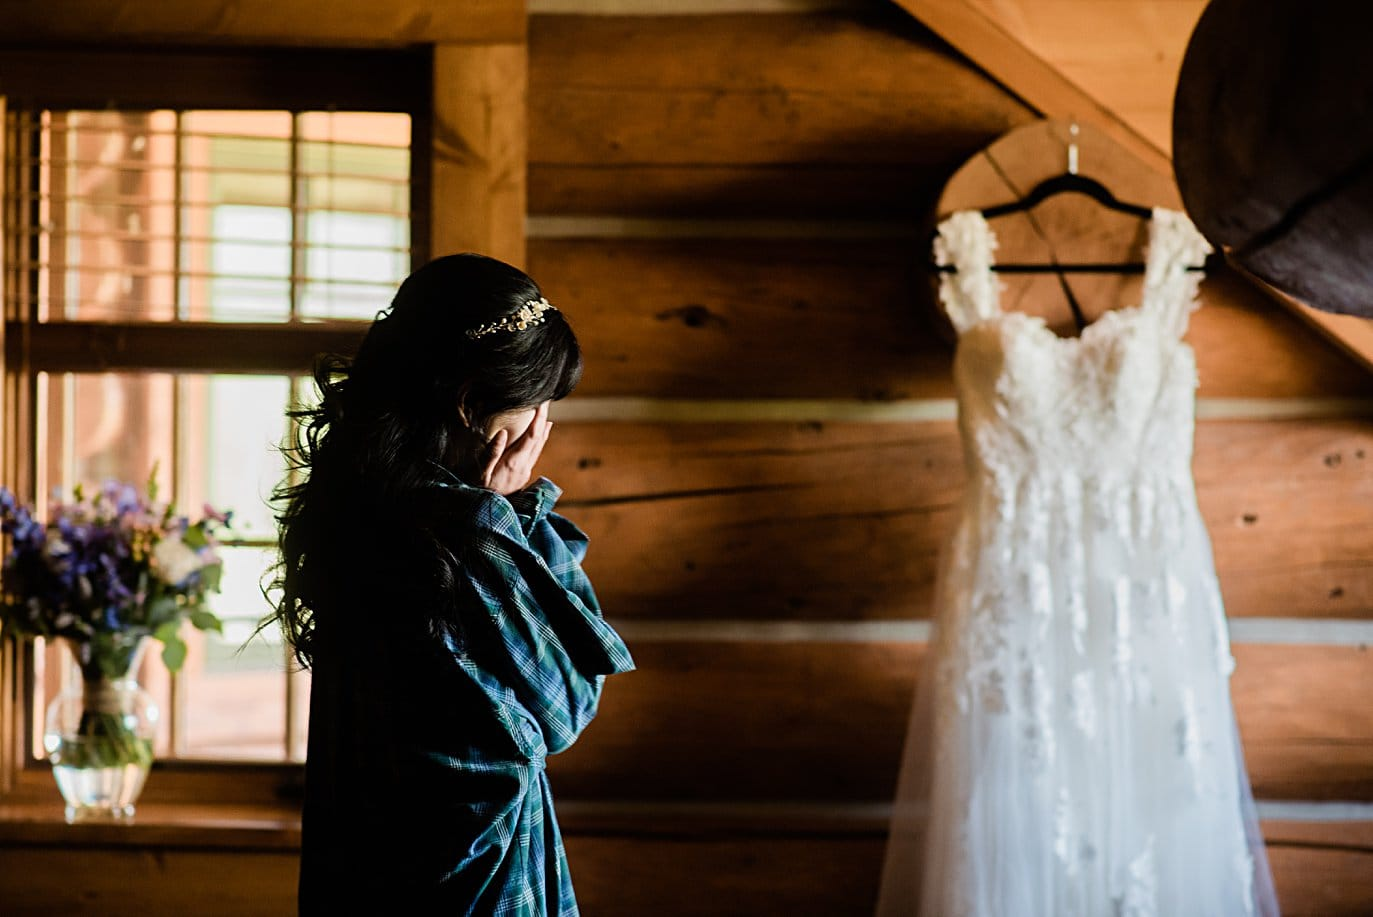 bride overwhelmed with emotion as she looks at wedding dress on wedding day at intimate Grand Lake wedding by Grand Lake wedding photographer Jennie Crate